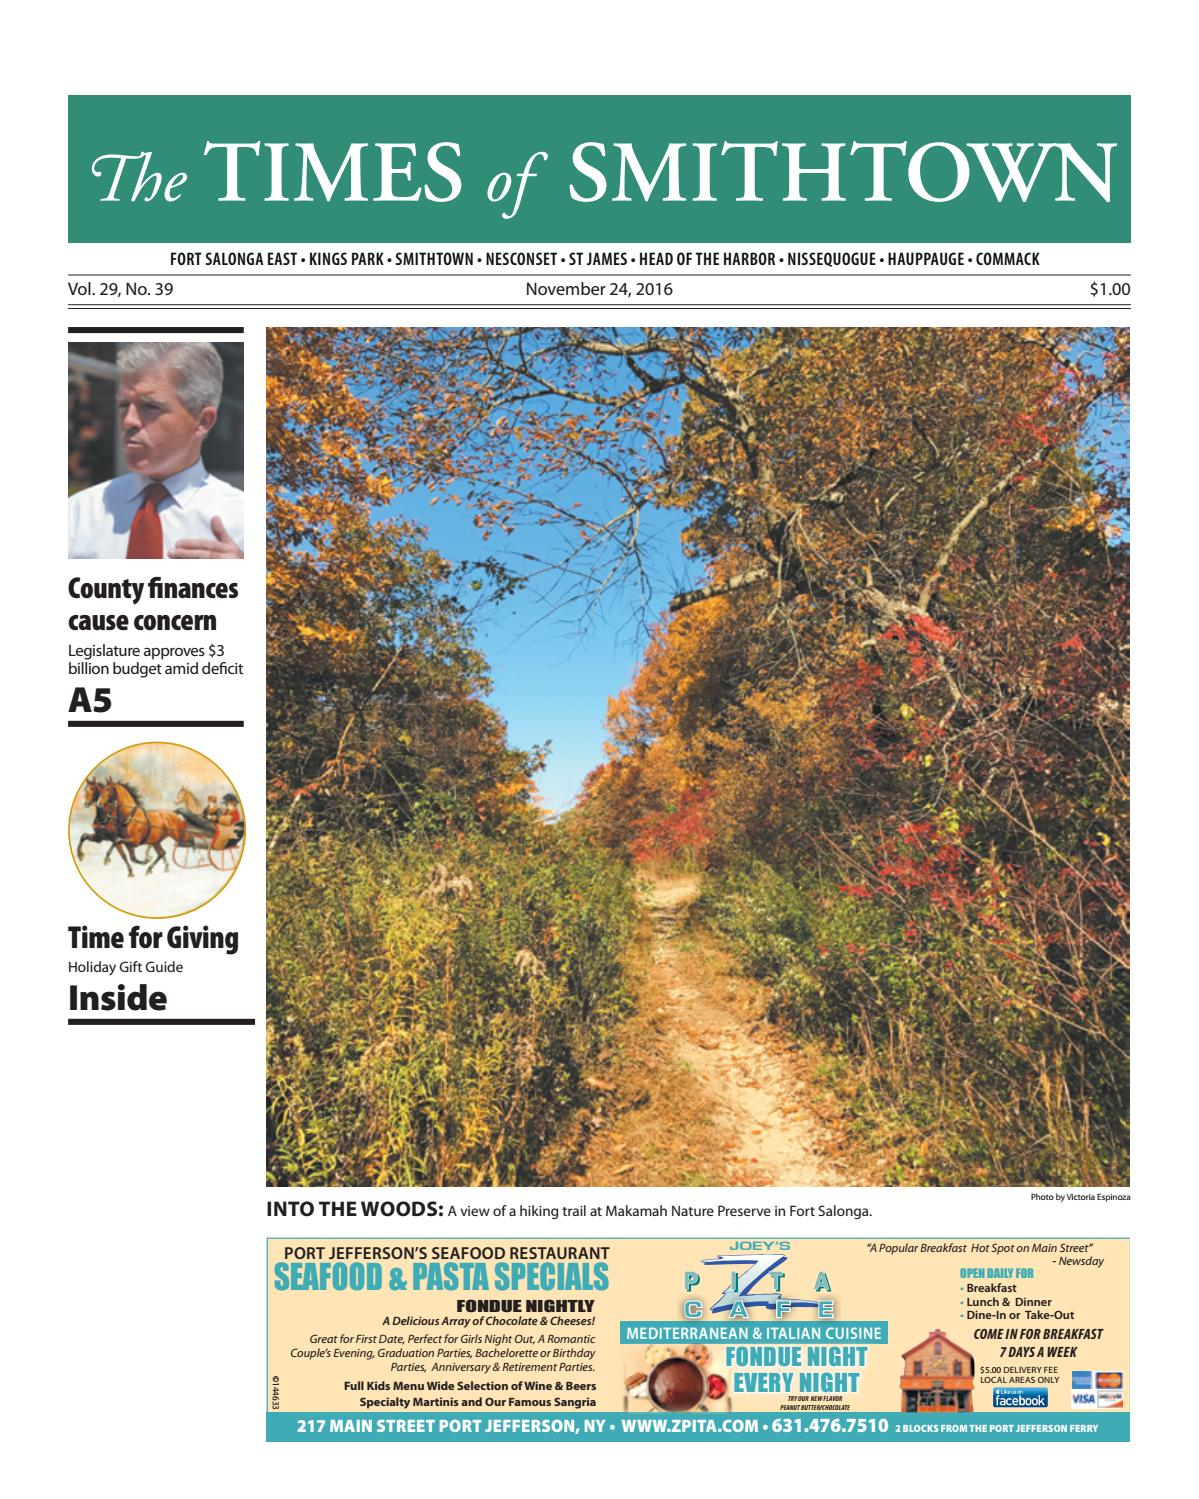 The times of smithtown november 24 2016 by tbr news media issuu negle Images